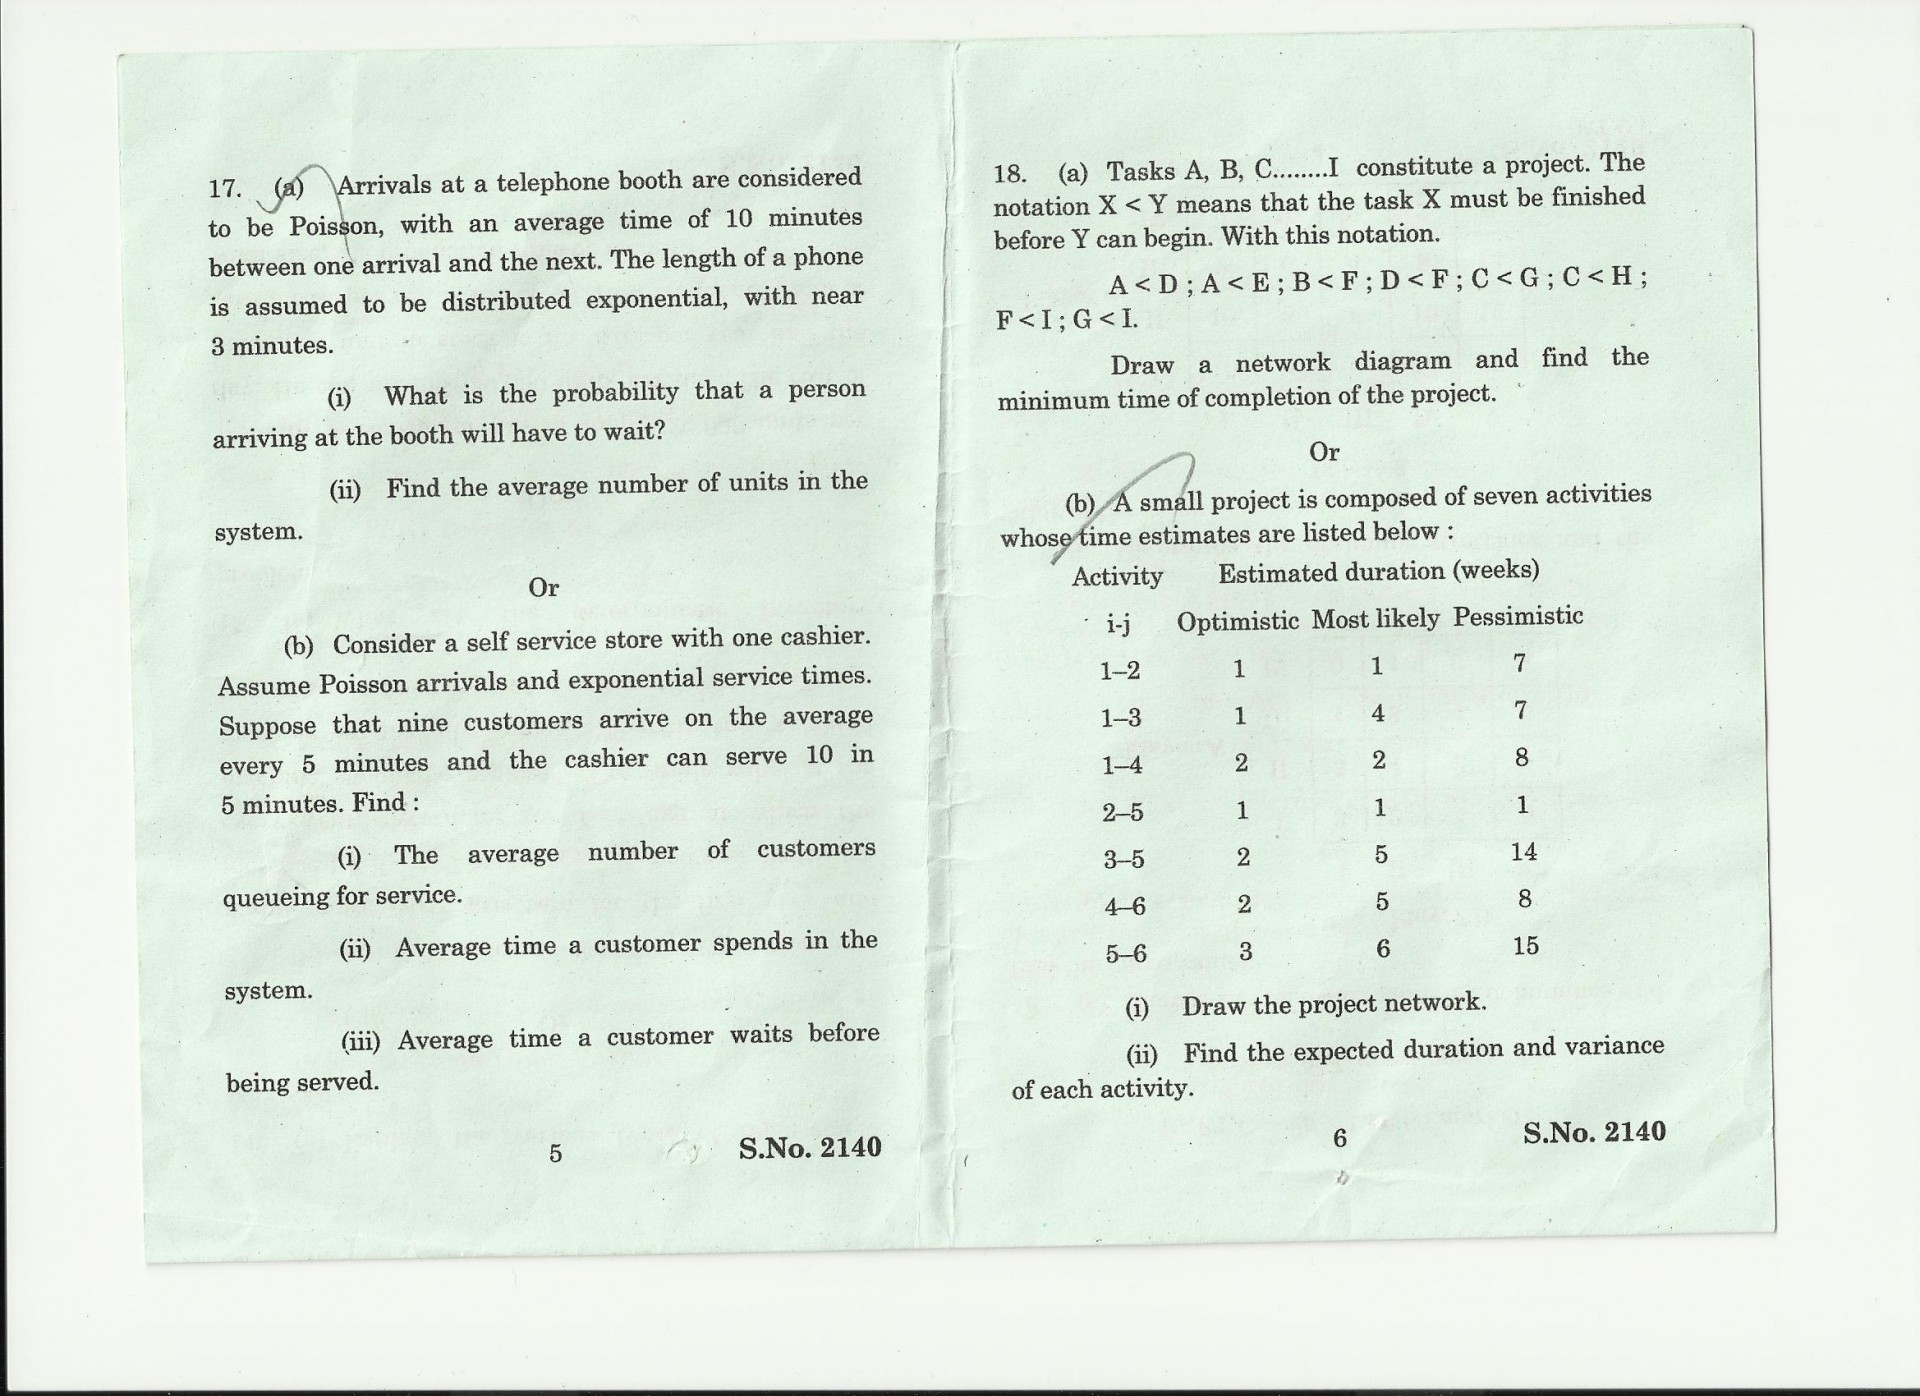 018 Questions For Research Paper Image Formidable Examples Abortion Topic 1920